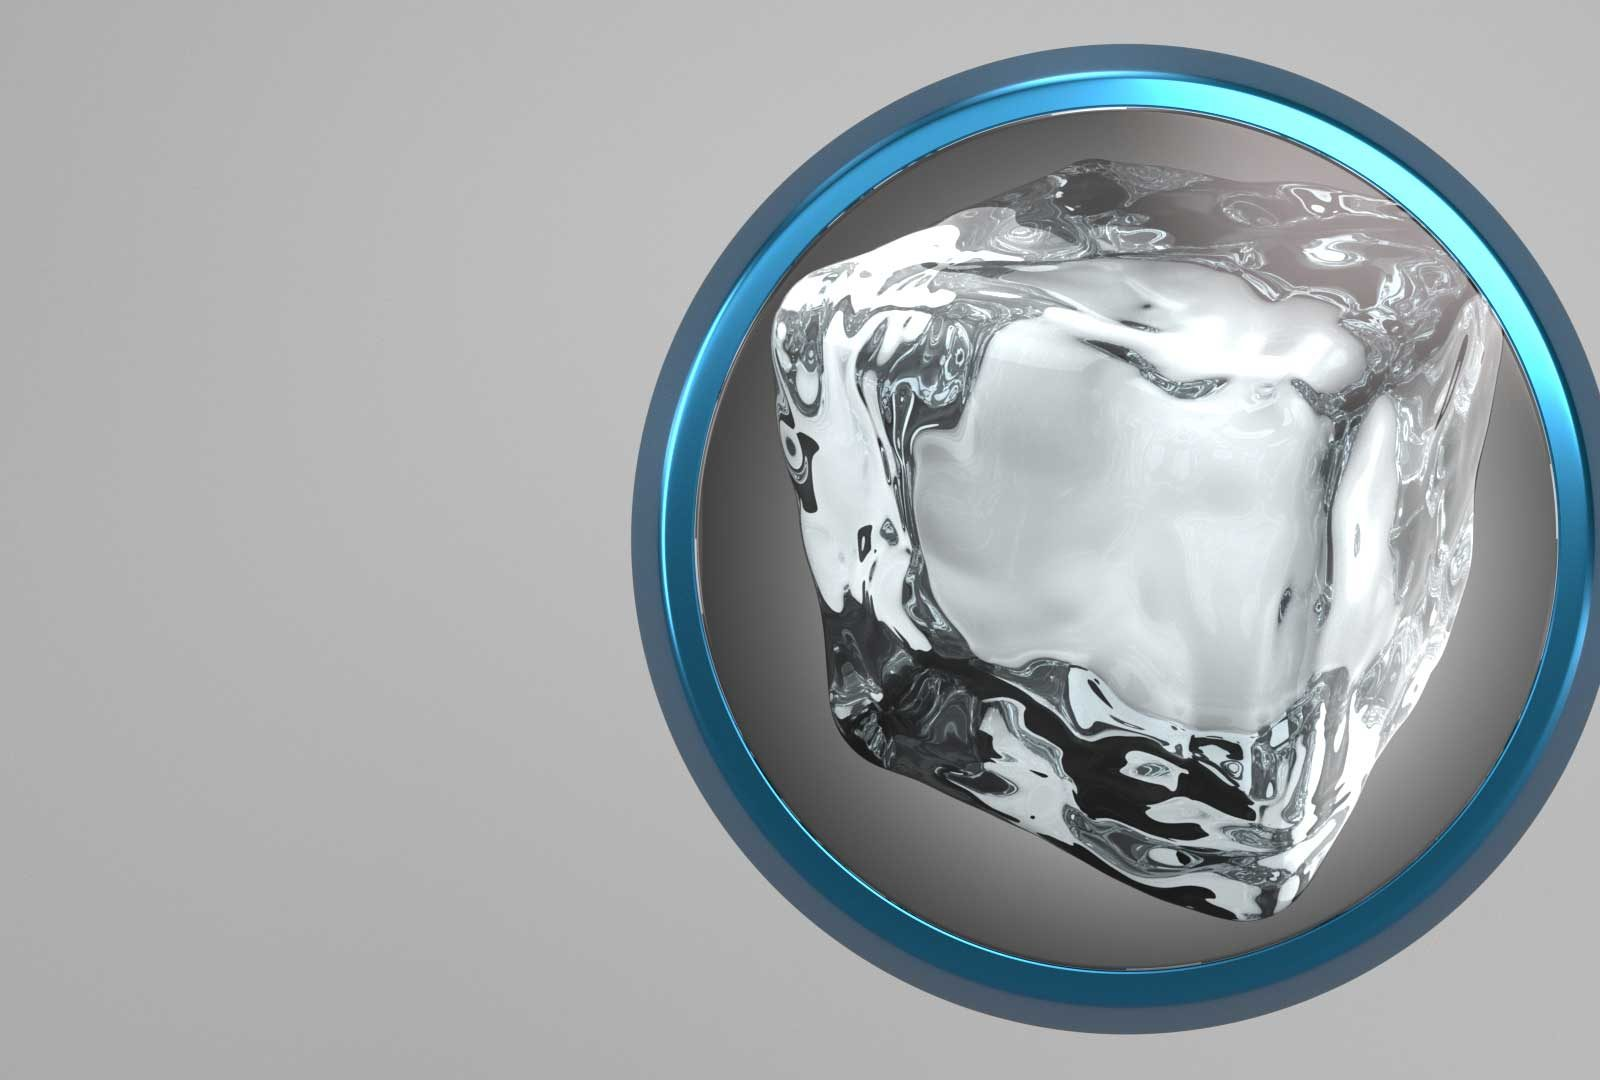 Ice Cubes for Cinema 4D from helloluxx by Dan Couto